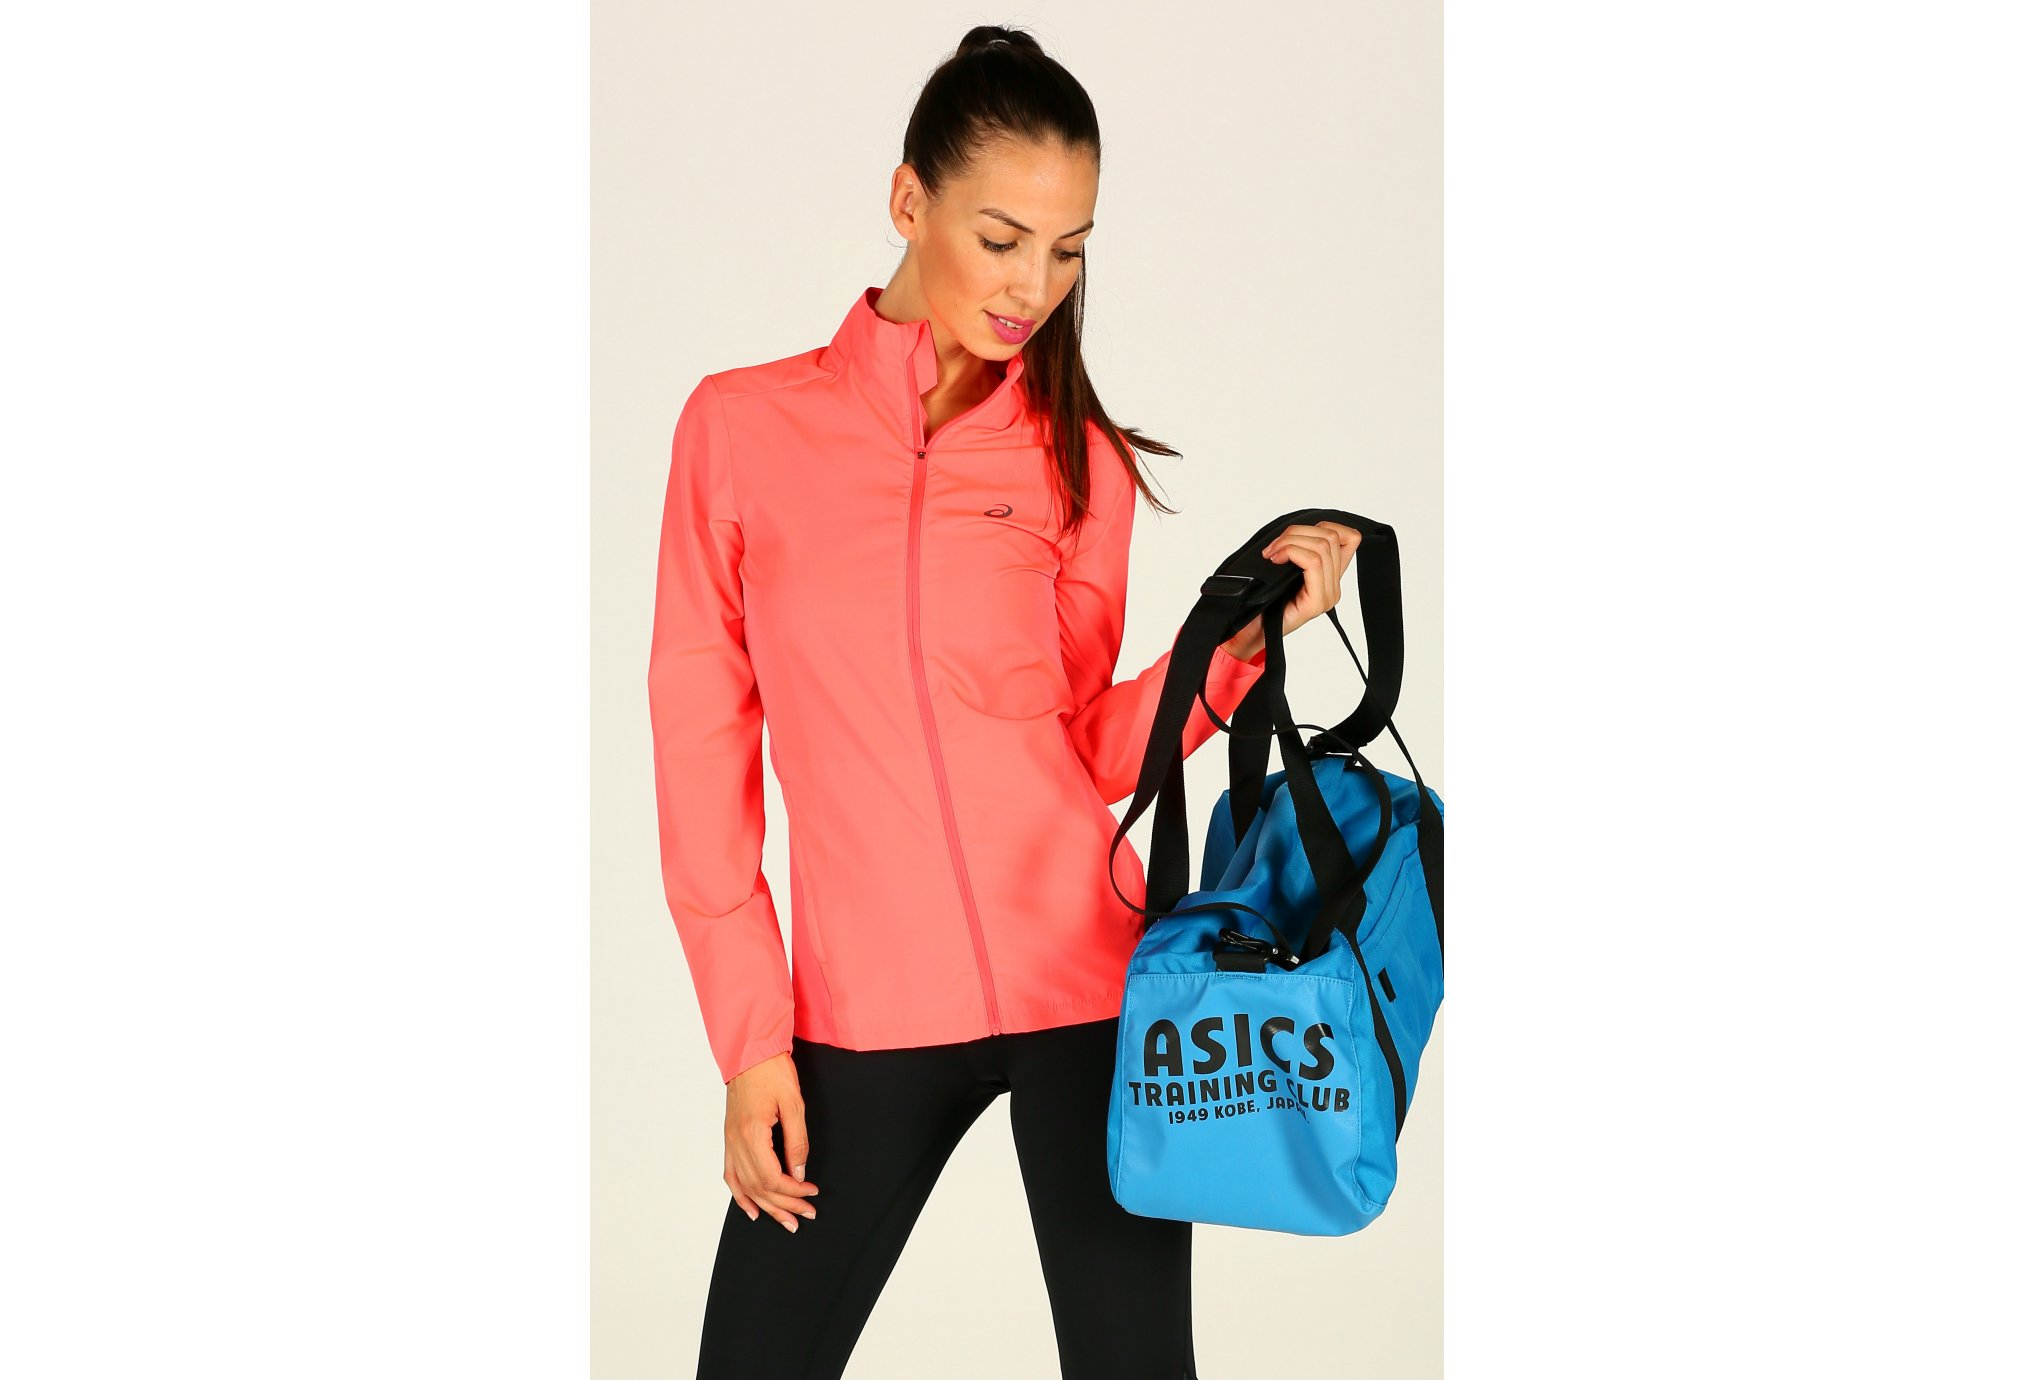 vetement running femme asics pas cher gt off69 rduction With vêtements running femme